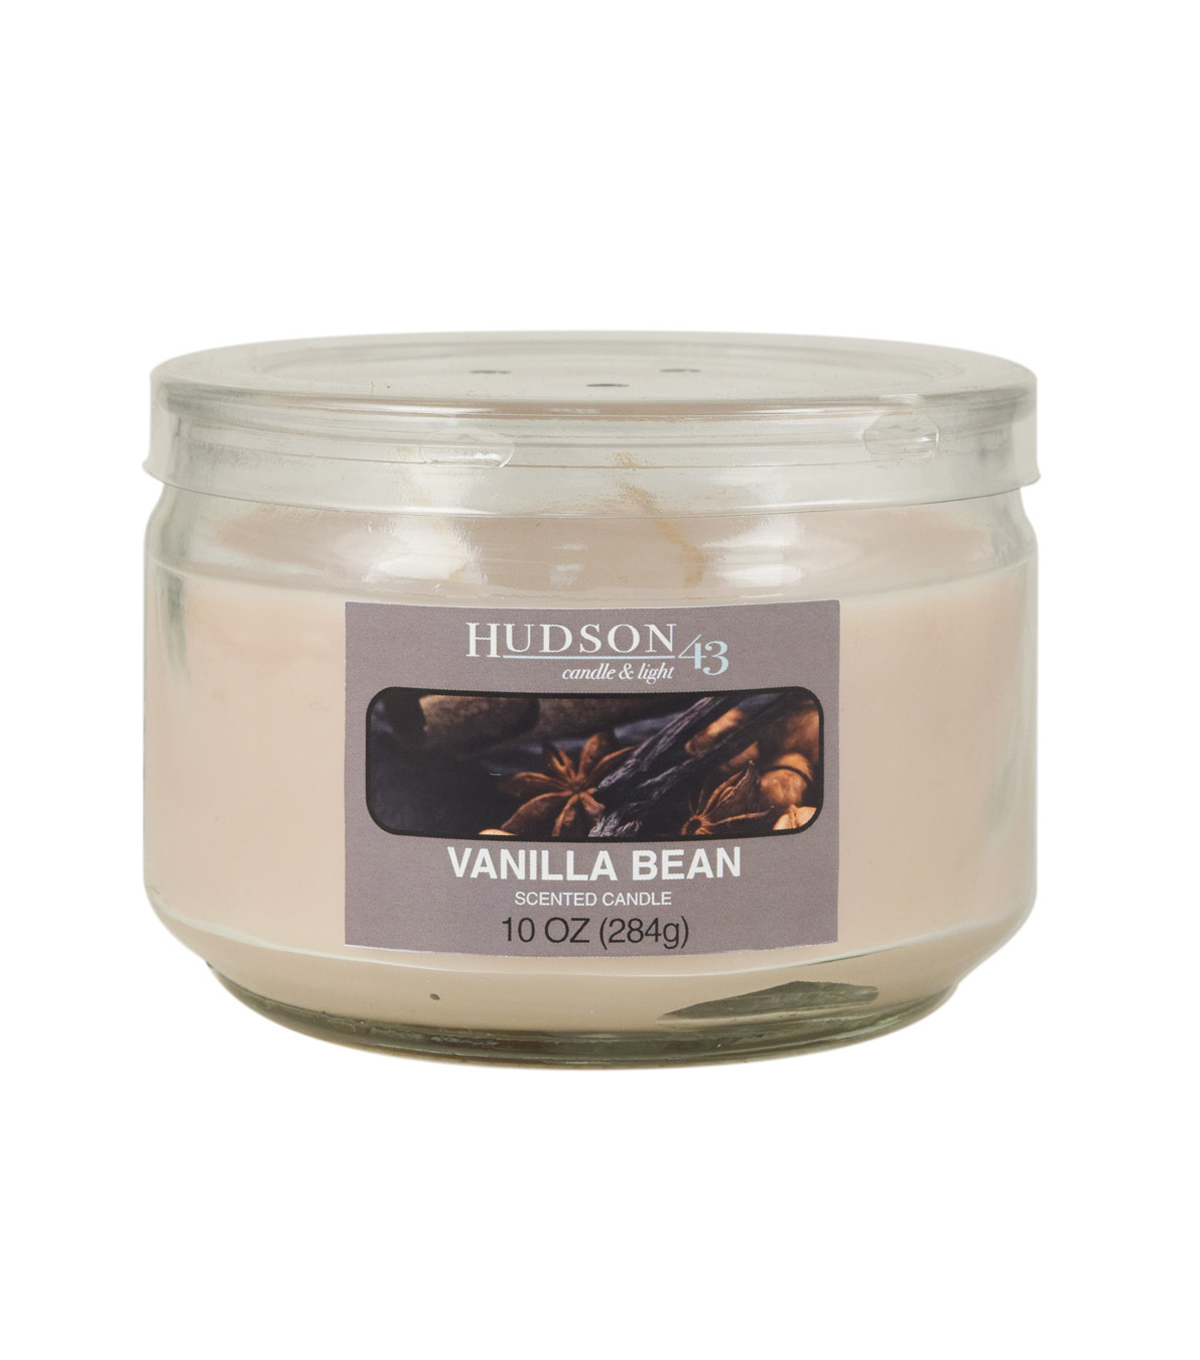 Hudson 43™ Candle & Light Collection 10oz Value Jar Vanilla Cinnamon